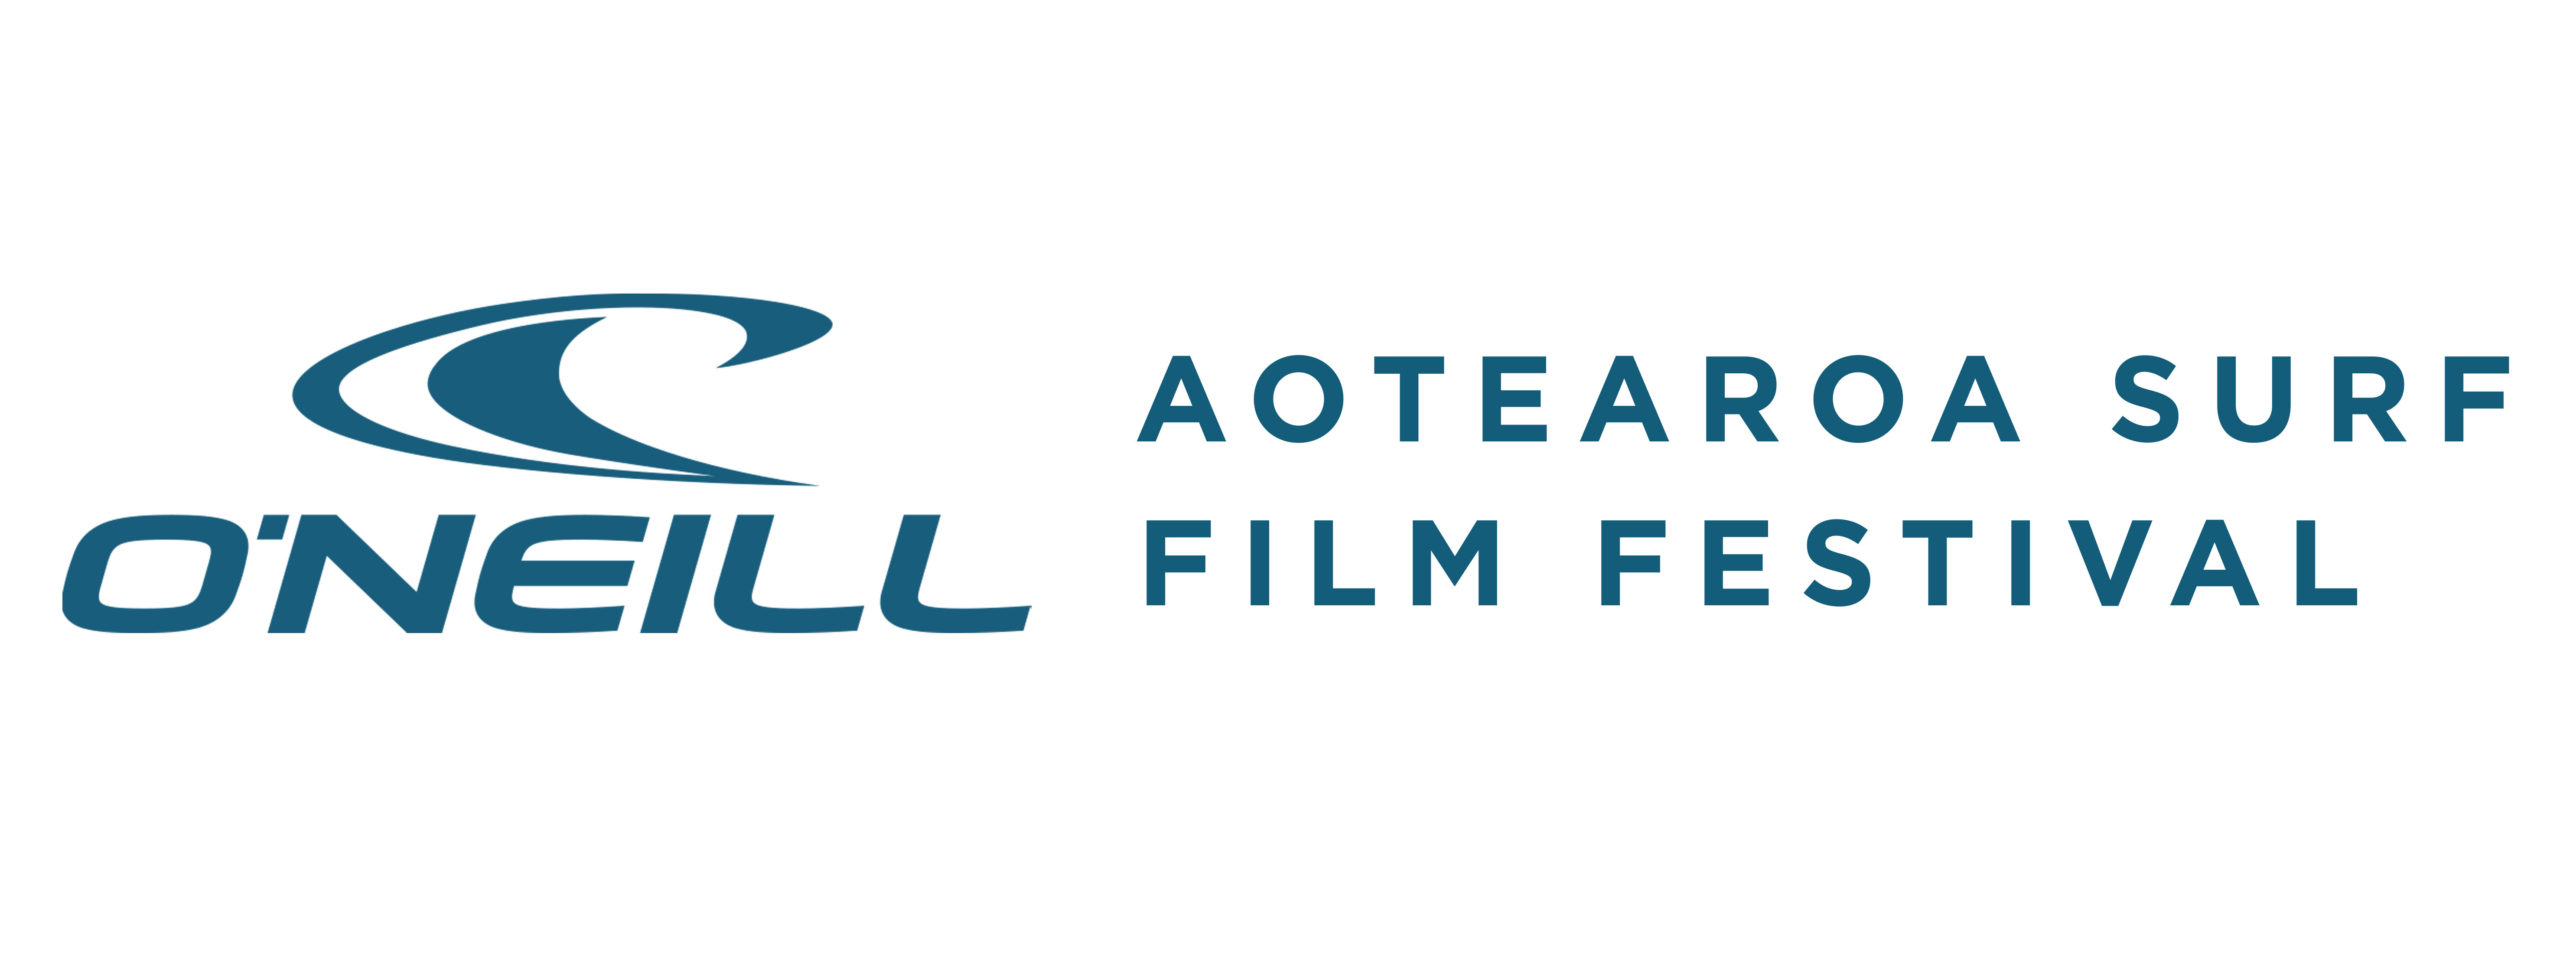 O'Neill Aotearoa Surf Film Festival - Back for 2020